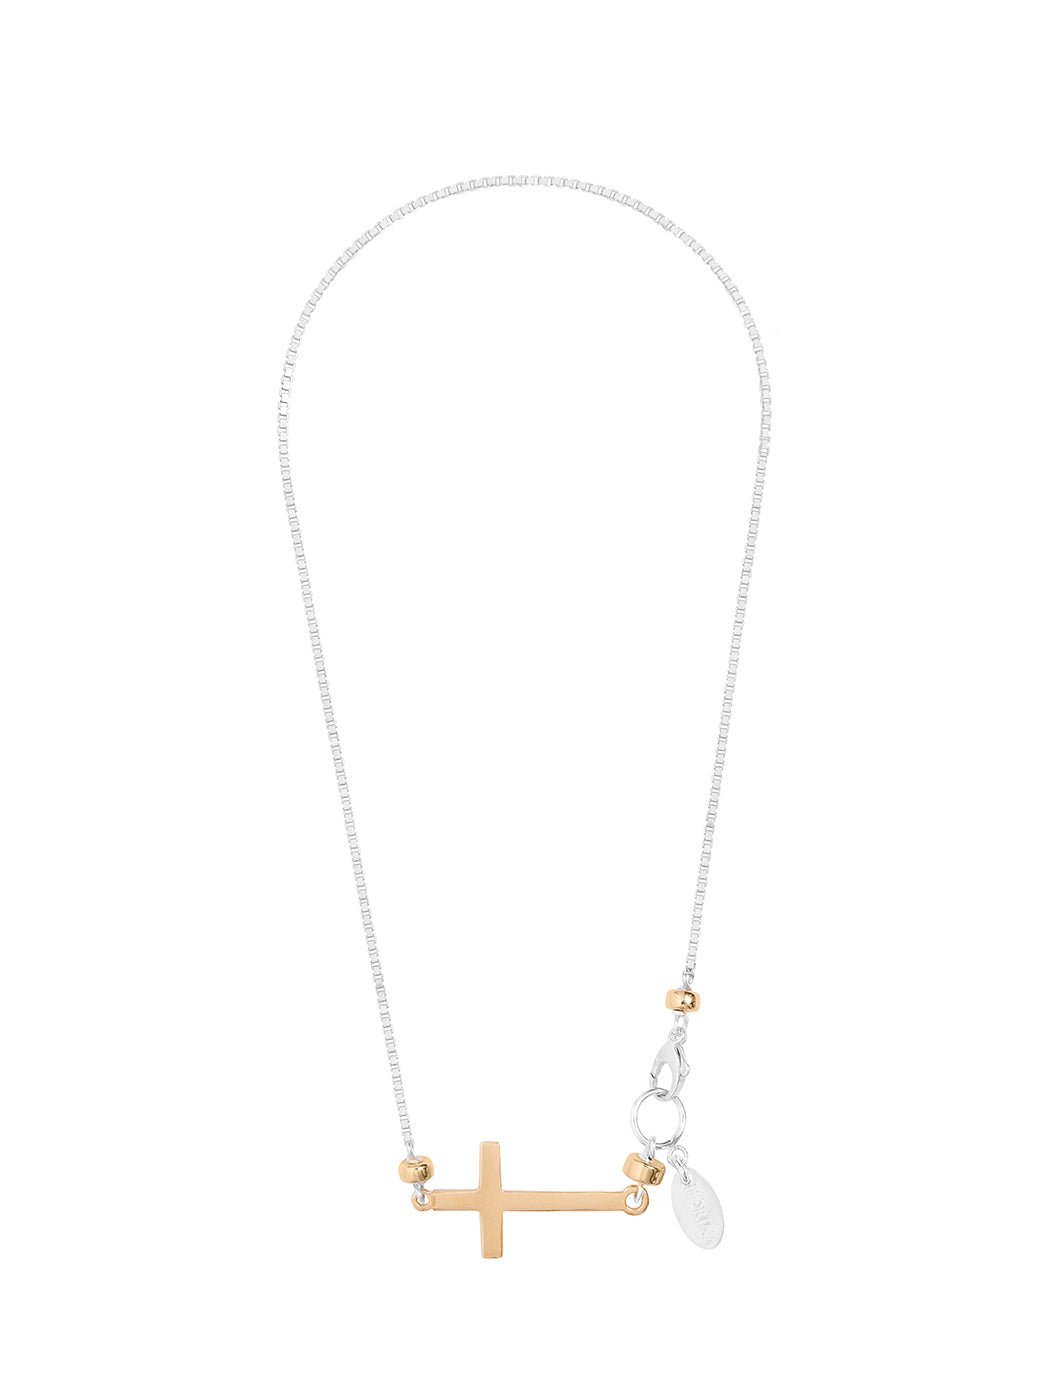 Fiorina Jewellery Gold and Silver Side Cross Necklace